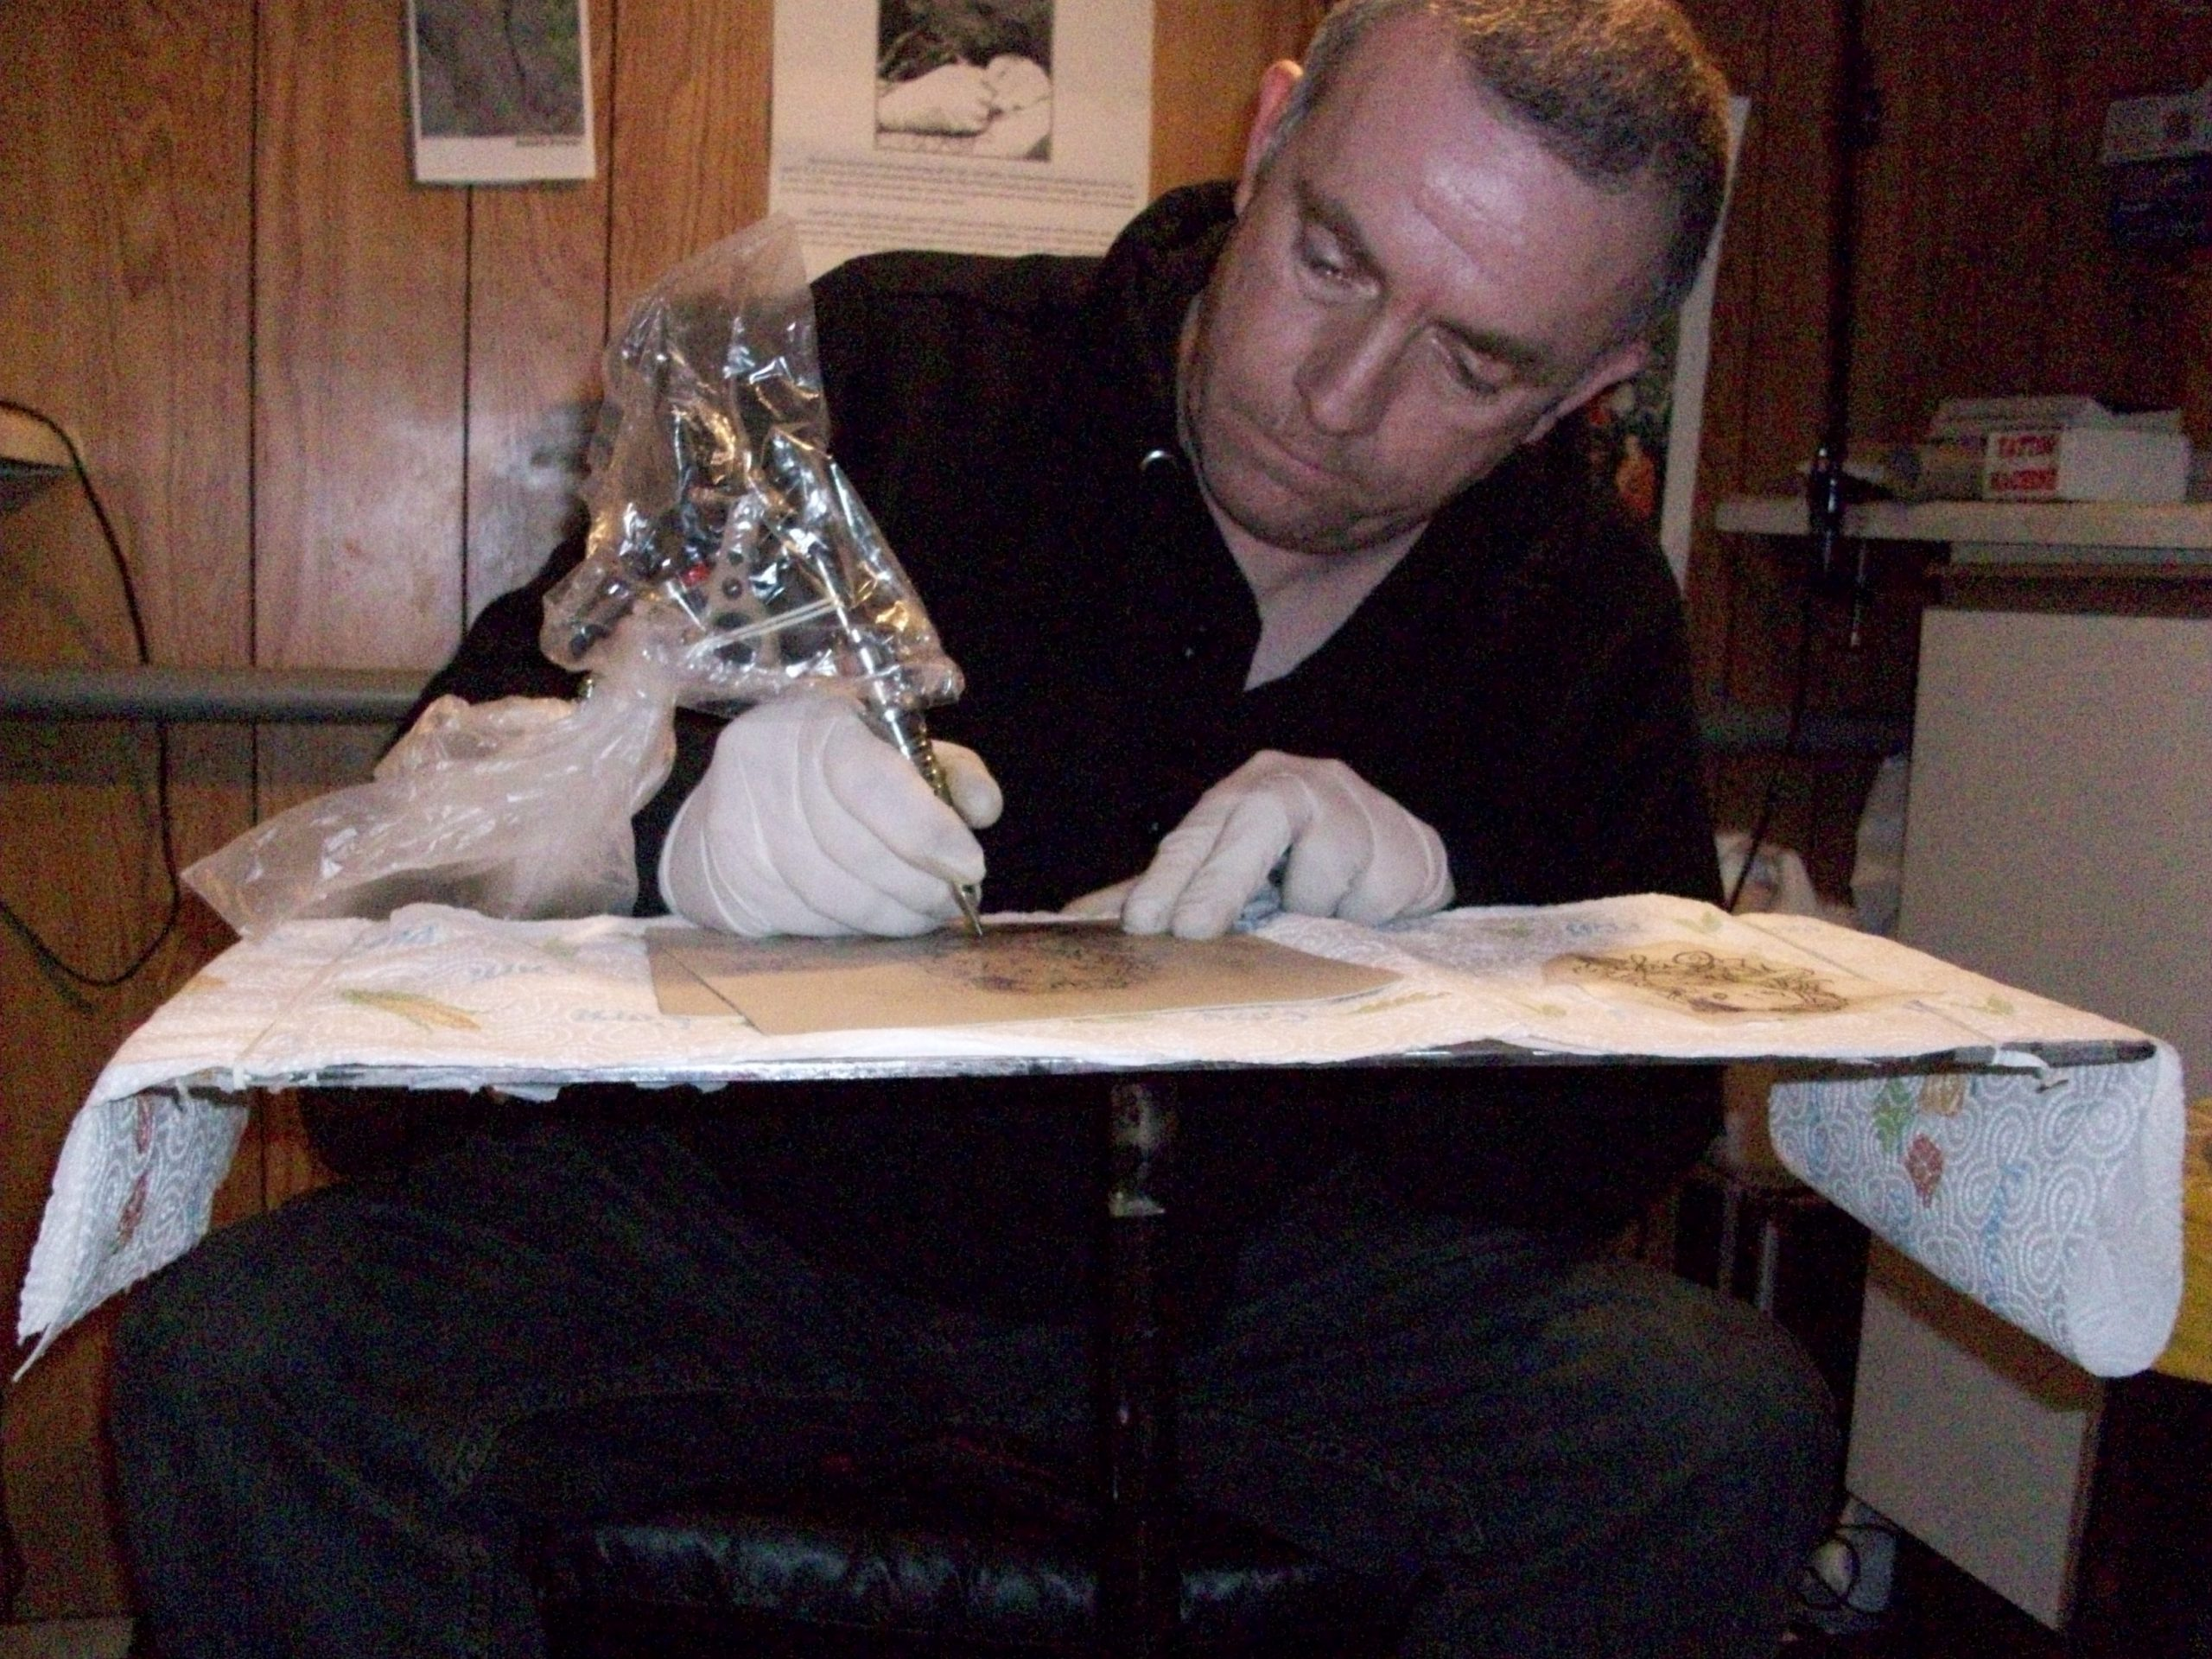 Leigh Completed our Tattoo Training Course December 2010